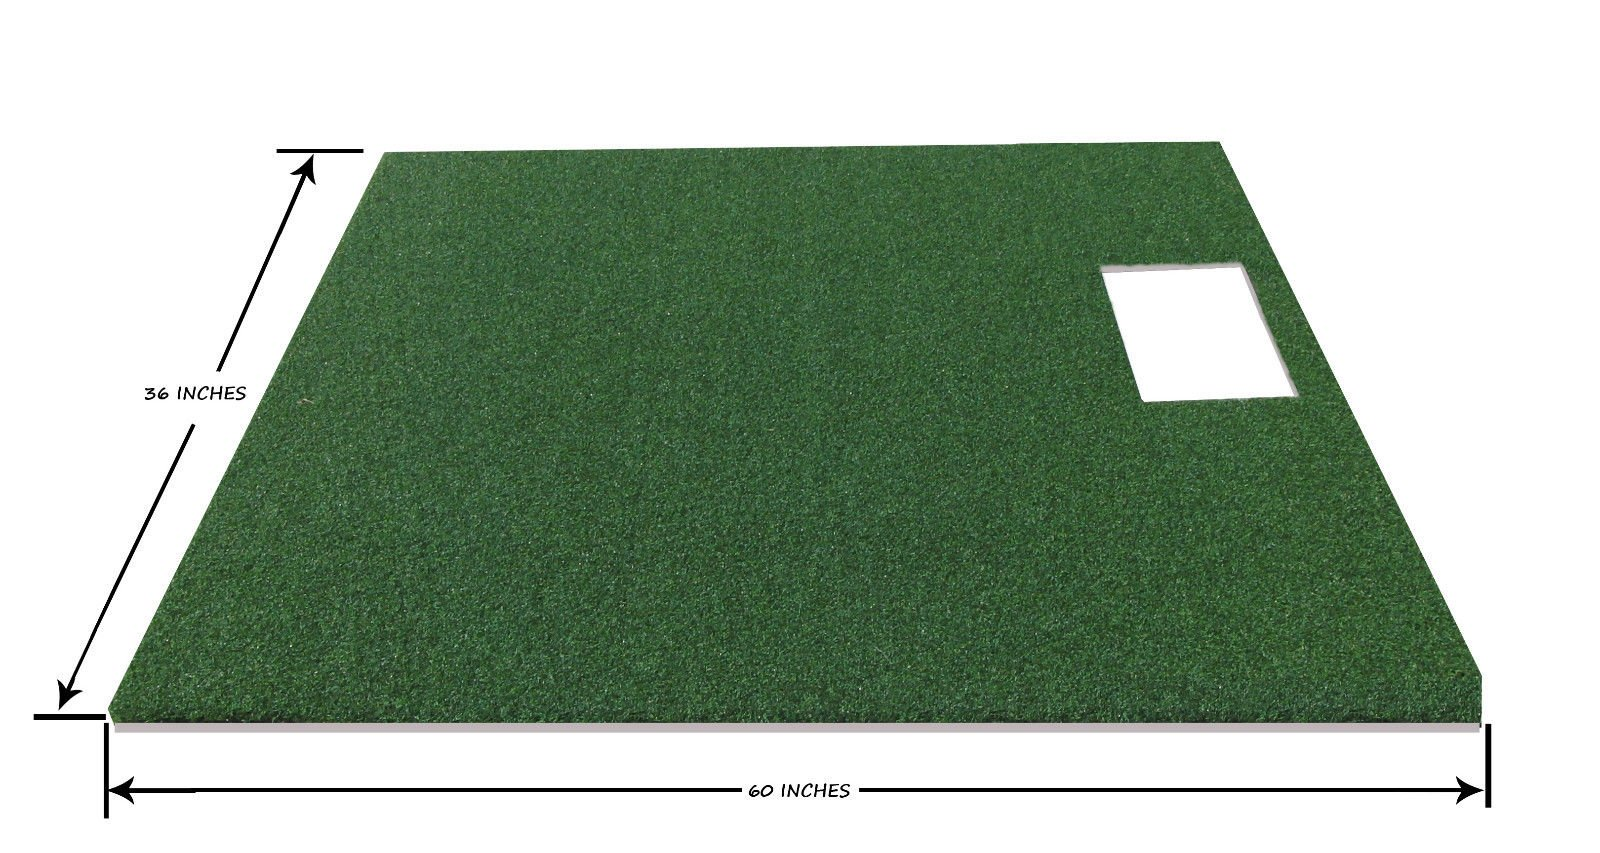 PREMIUM PRO TURF 3' x 5' Full Stance Golf Mat For The OptiShot Golf Simulator- 5mm Foam Backing